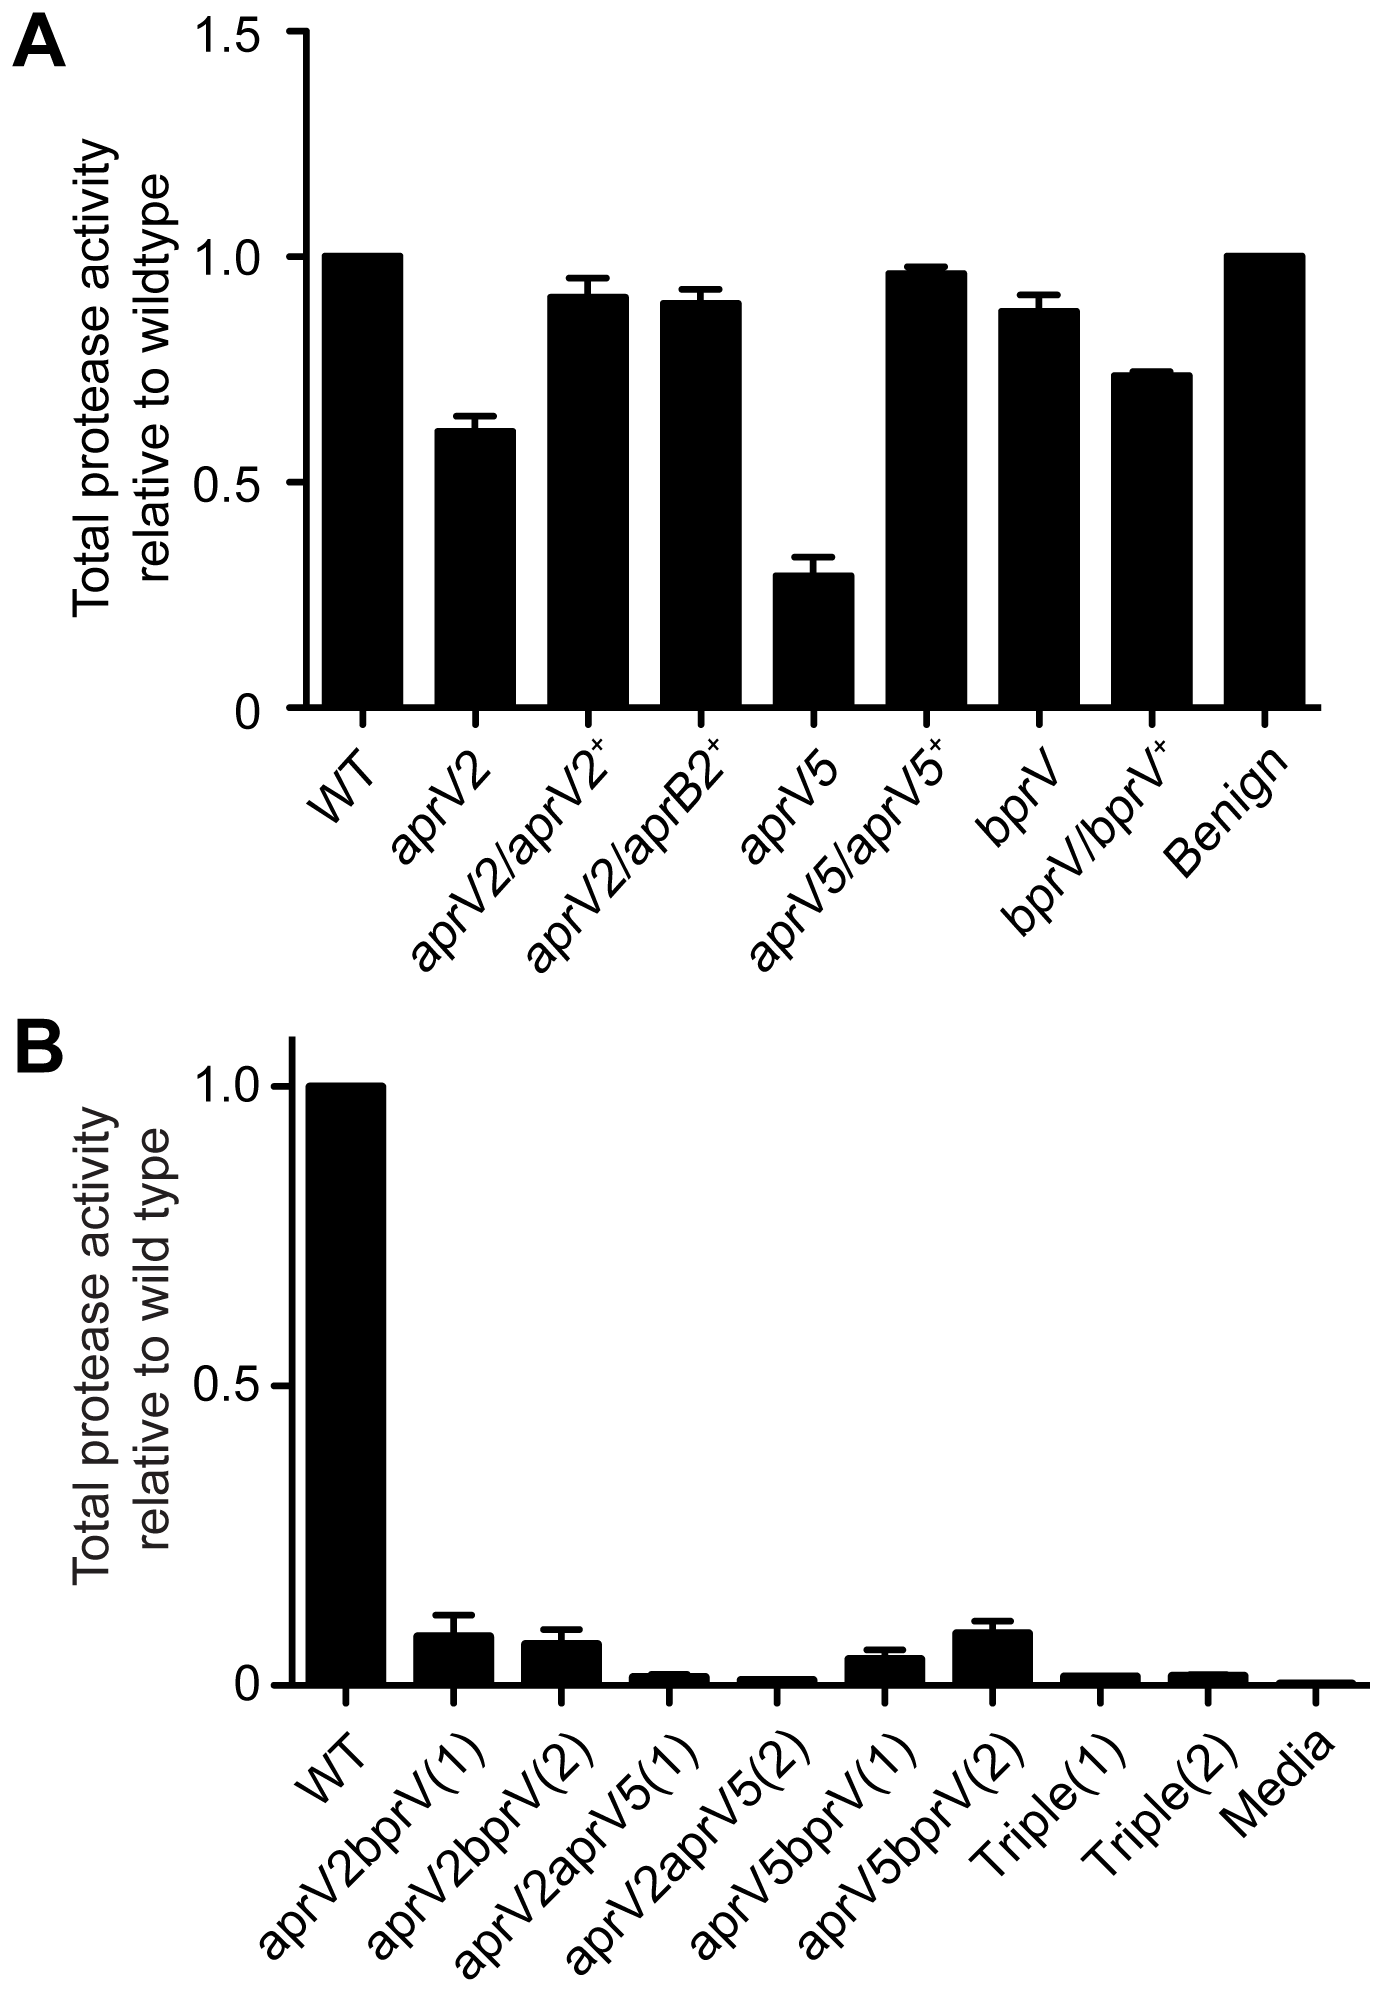 Protease activity of D. nodosus wild-type and protease mutants.